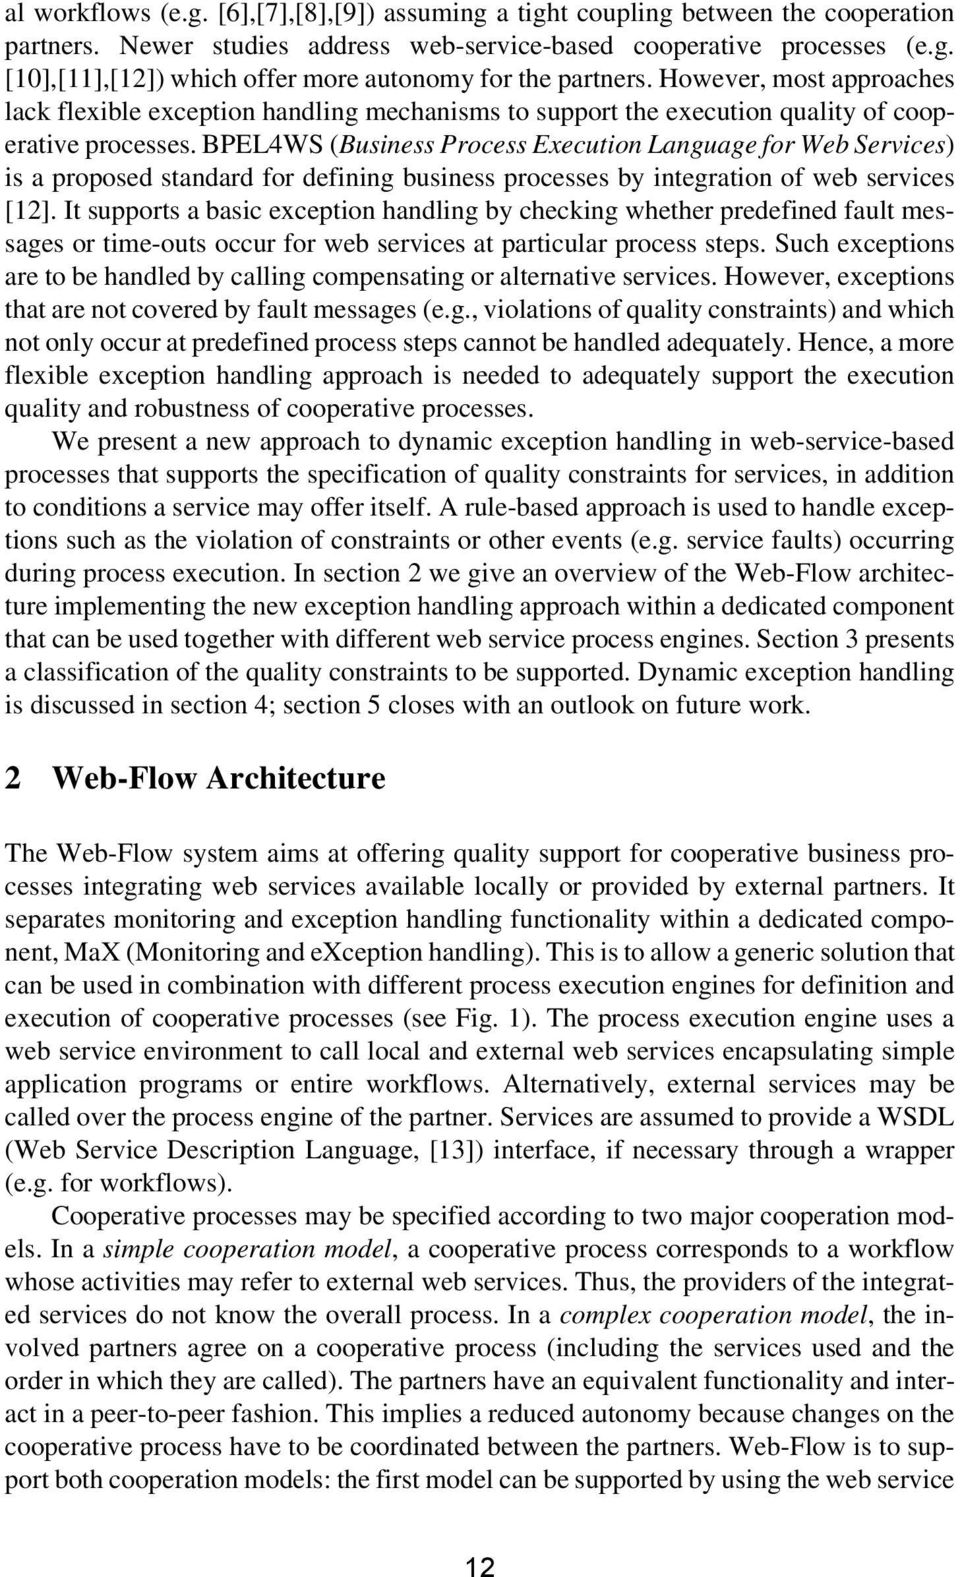 BPEL4WS (Business Process Execution Language for Web Services) is a proposed standard for defining business processes by integration of web services [12].